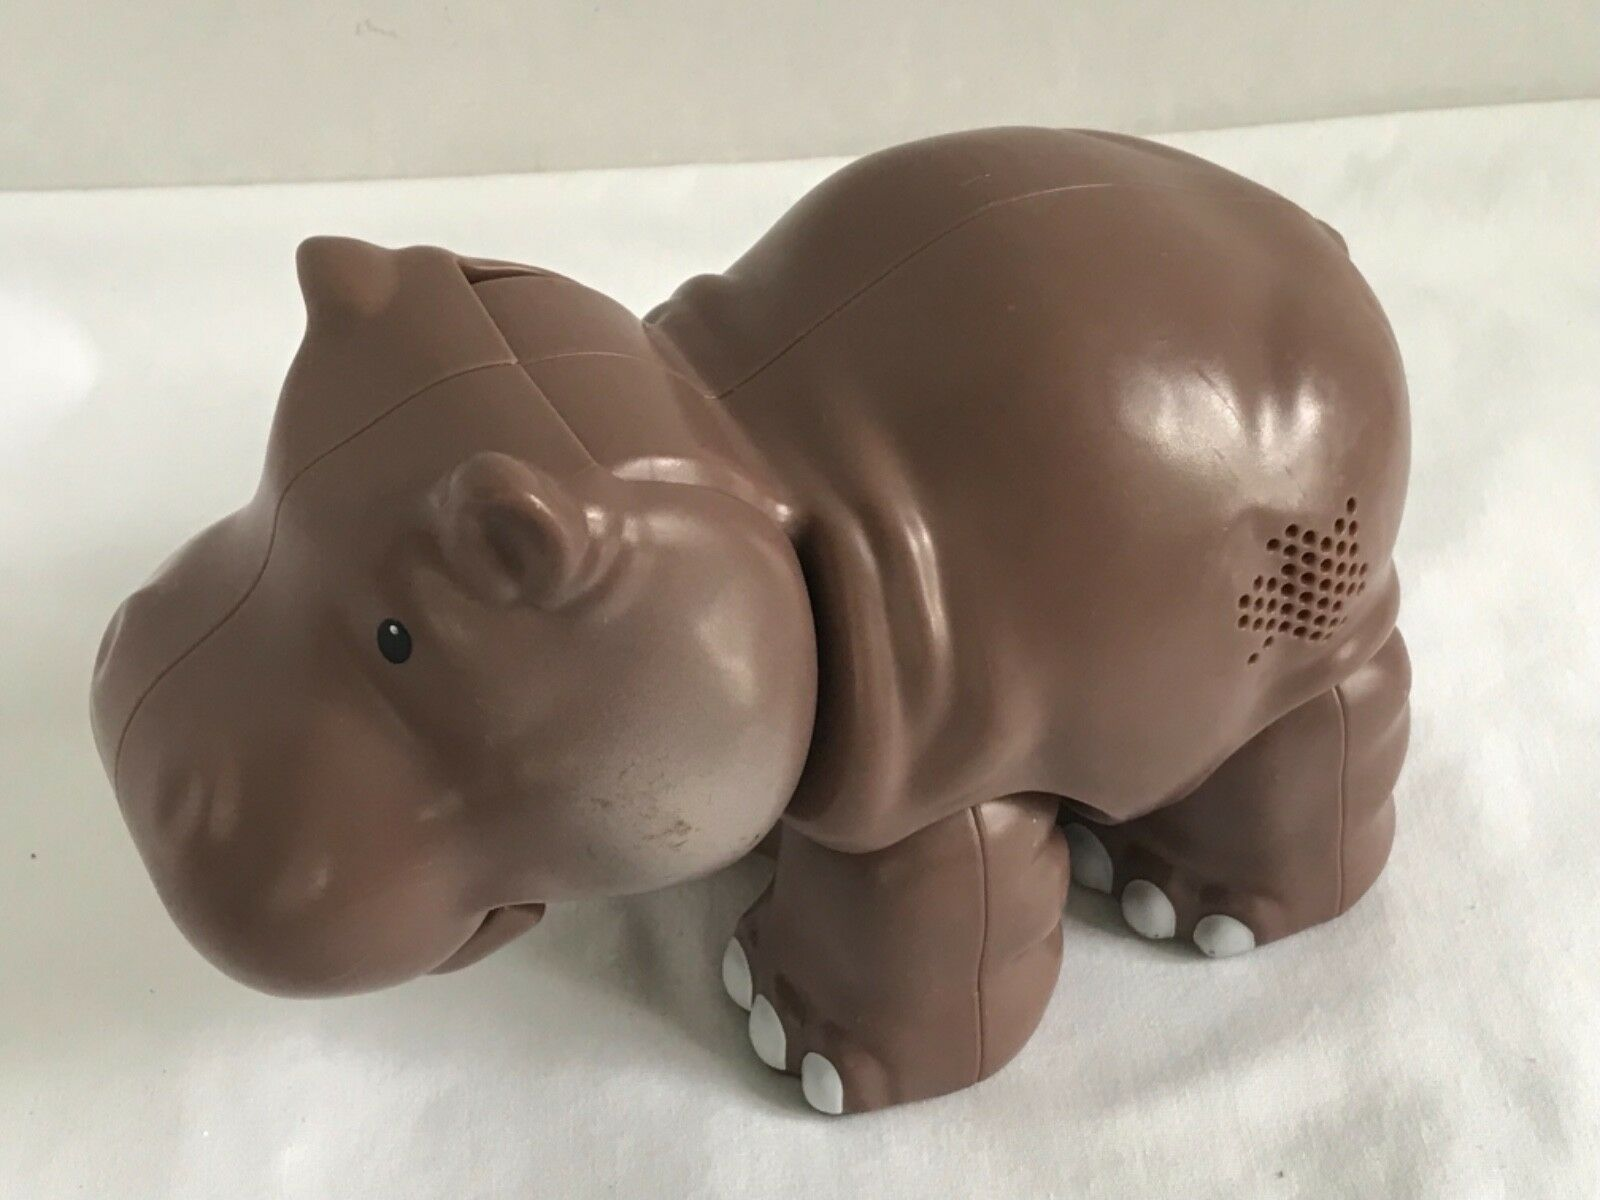 Little People Hippopotamus with Sound by Fisher Price (AH)